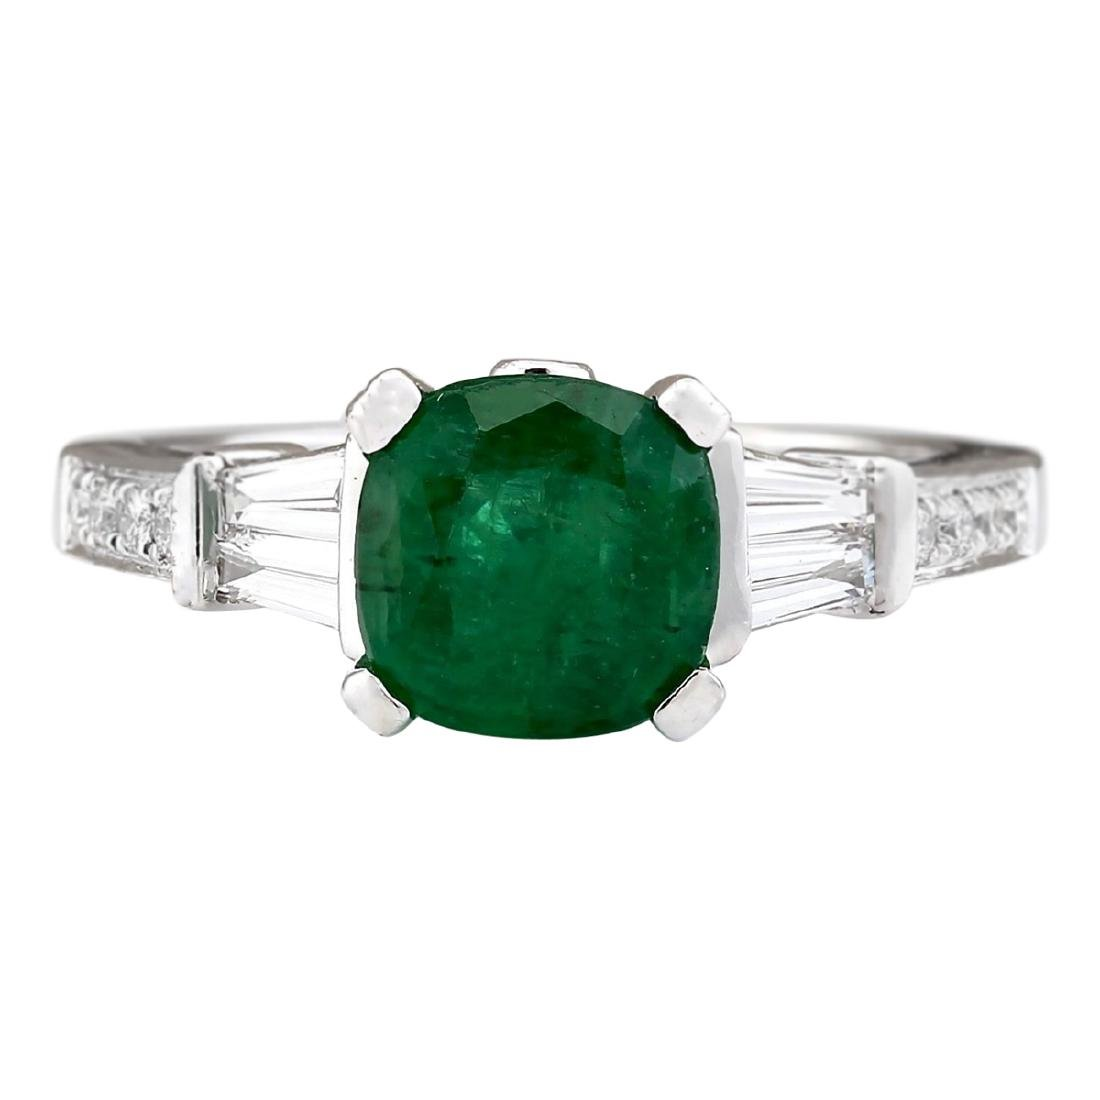 2.38 CTW Natural Emerald And Diamond Ring In 18K White